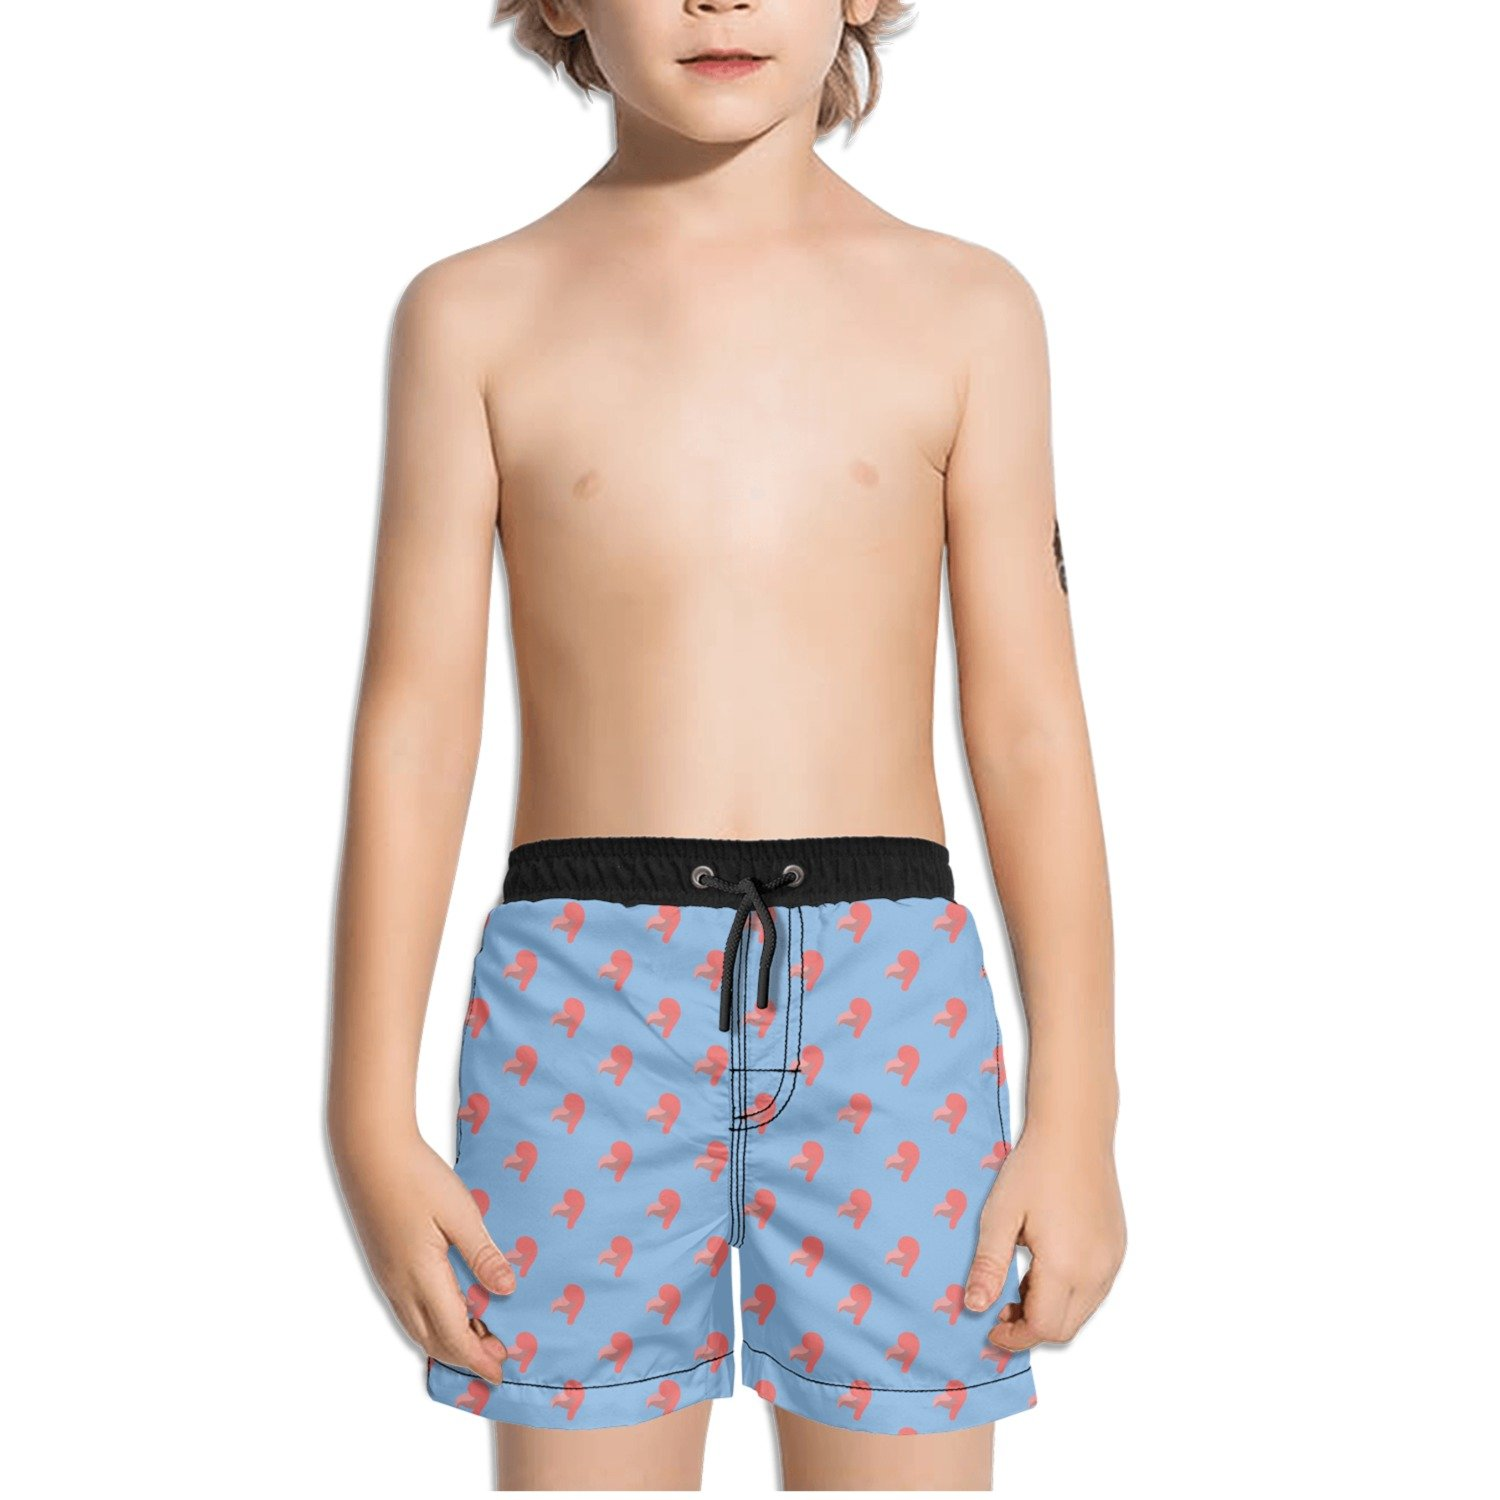 Trum Namii Boys Quick Dry Swim Trunks Pink Flamingo Head Heart Blue Background Shorts